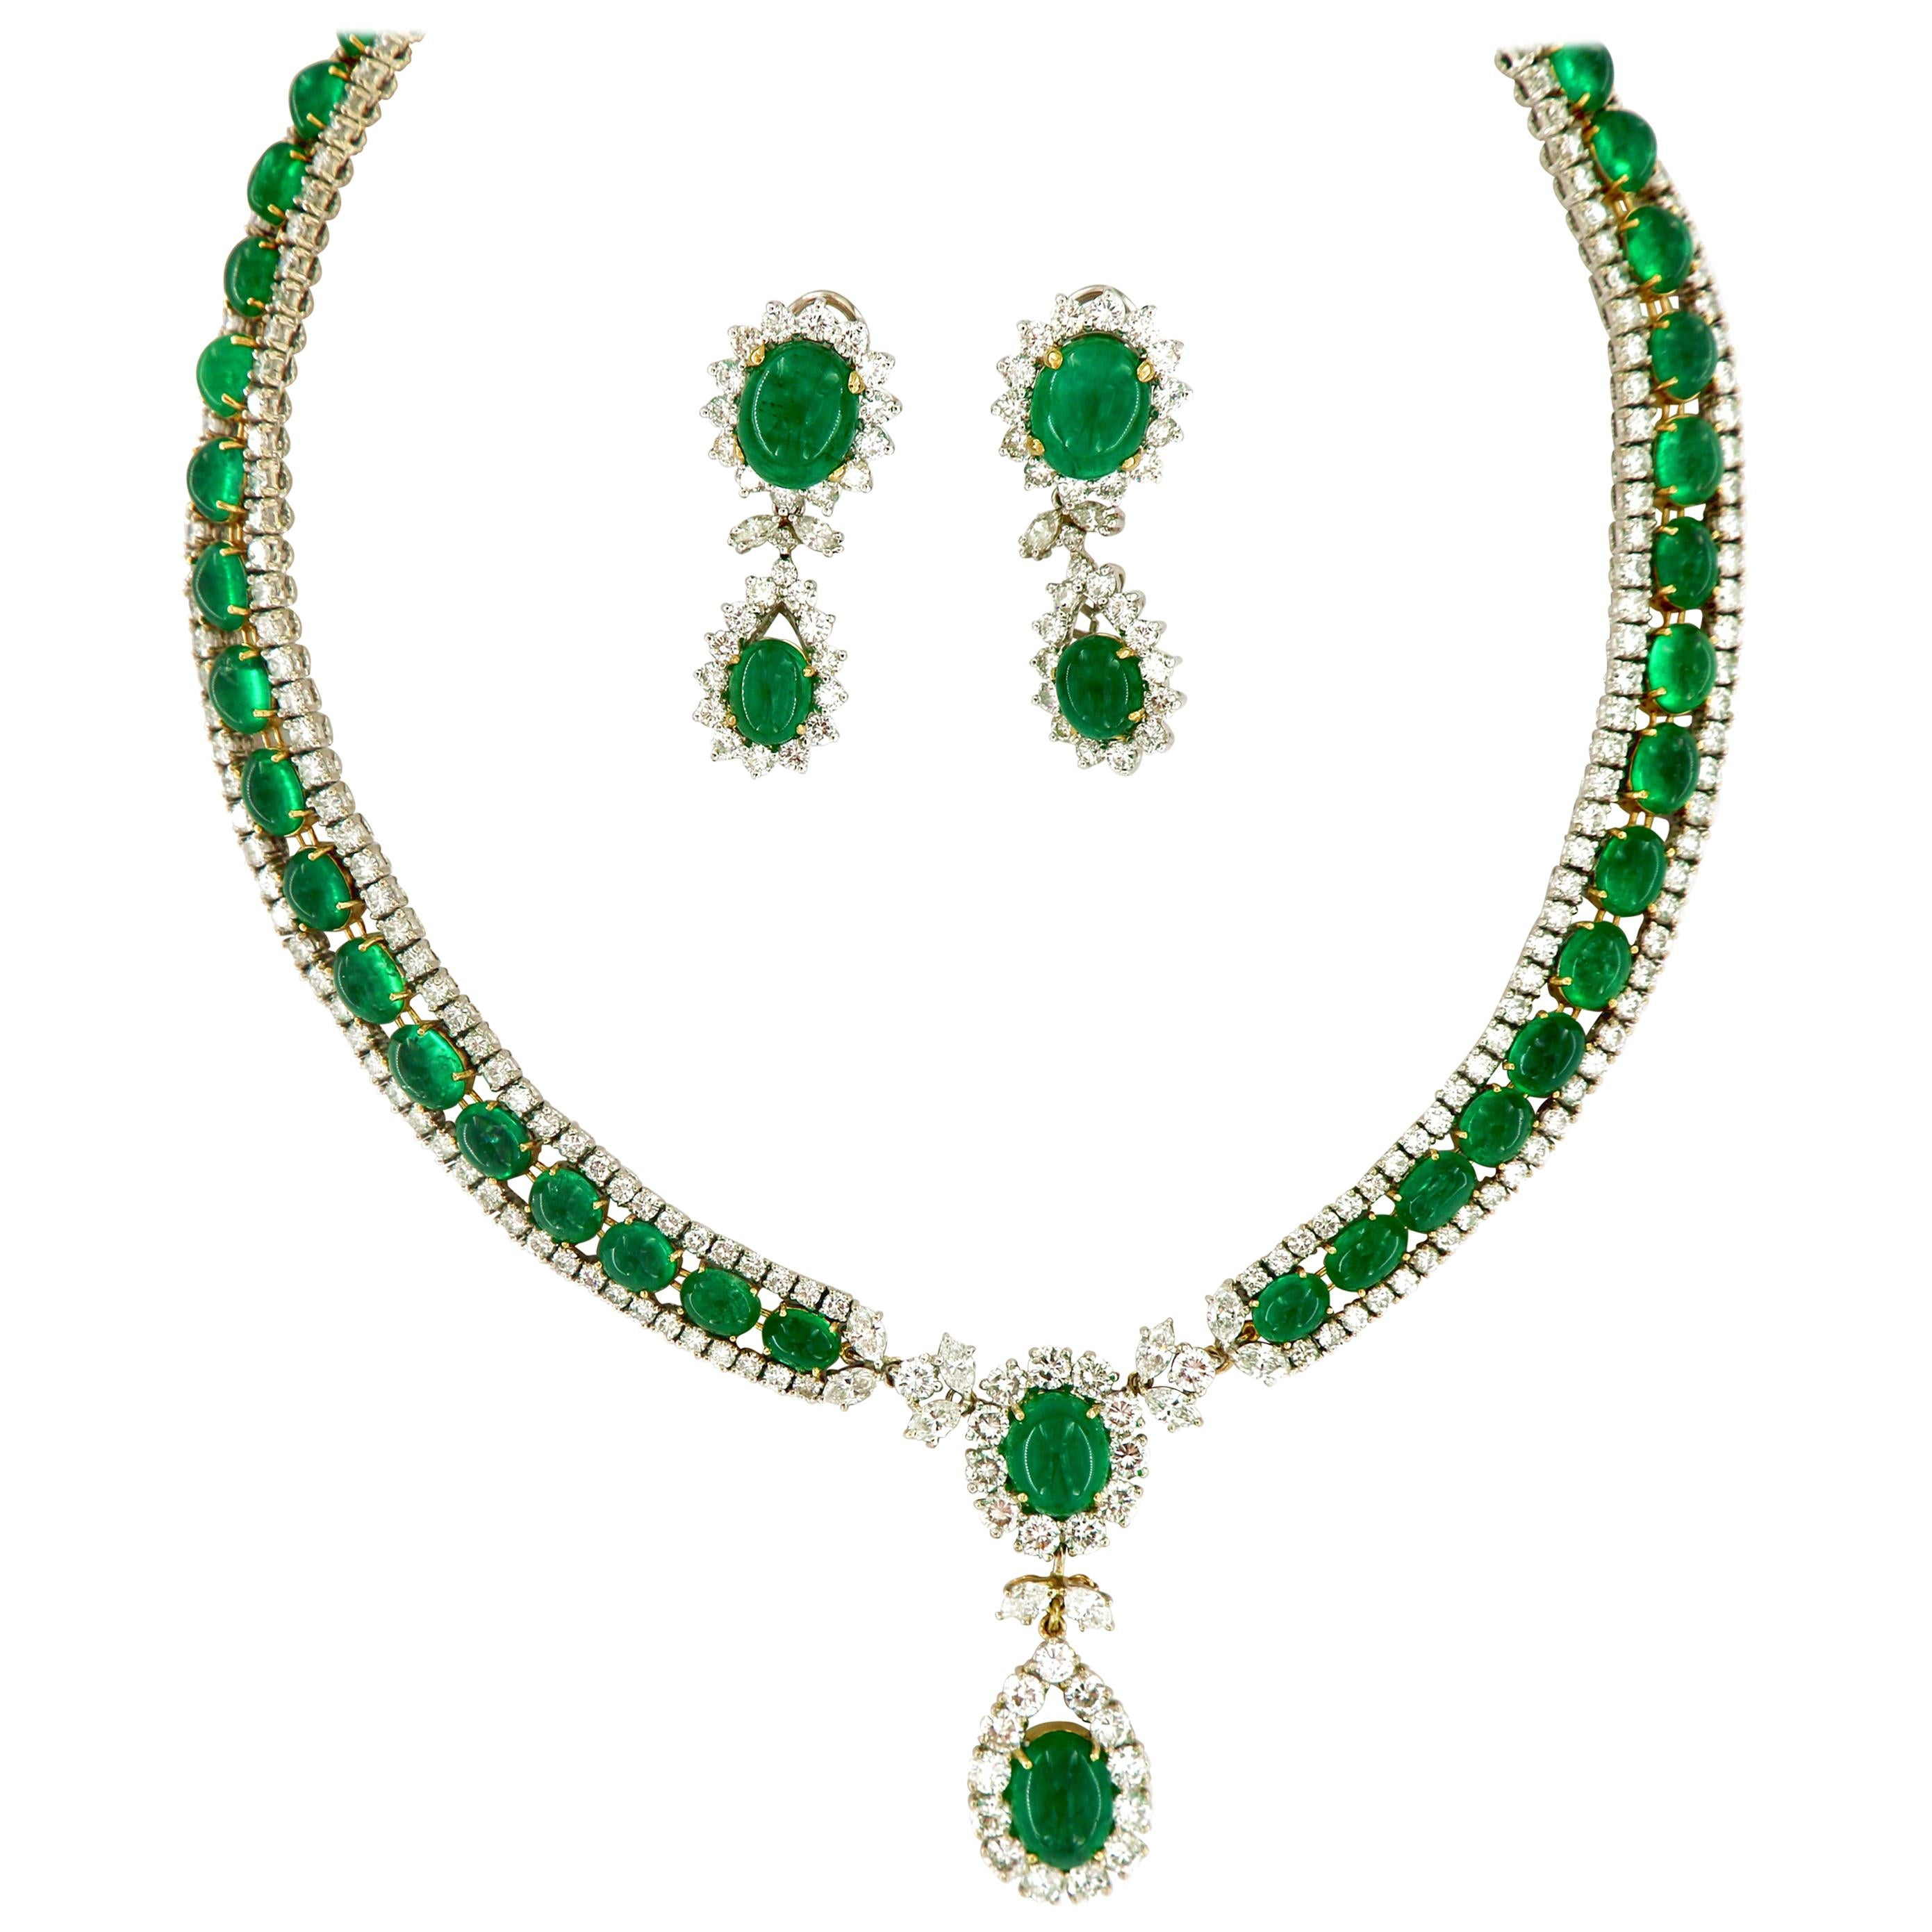 Vintage 125 Carat Russian Emeralds and Diamonds Necklace and Earring Circa 1960